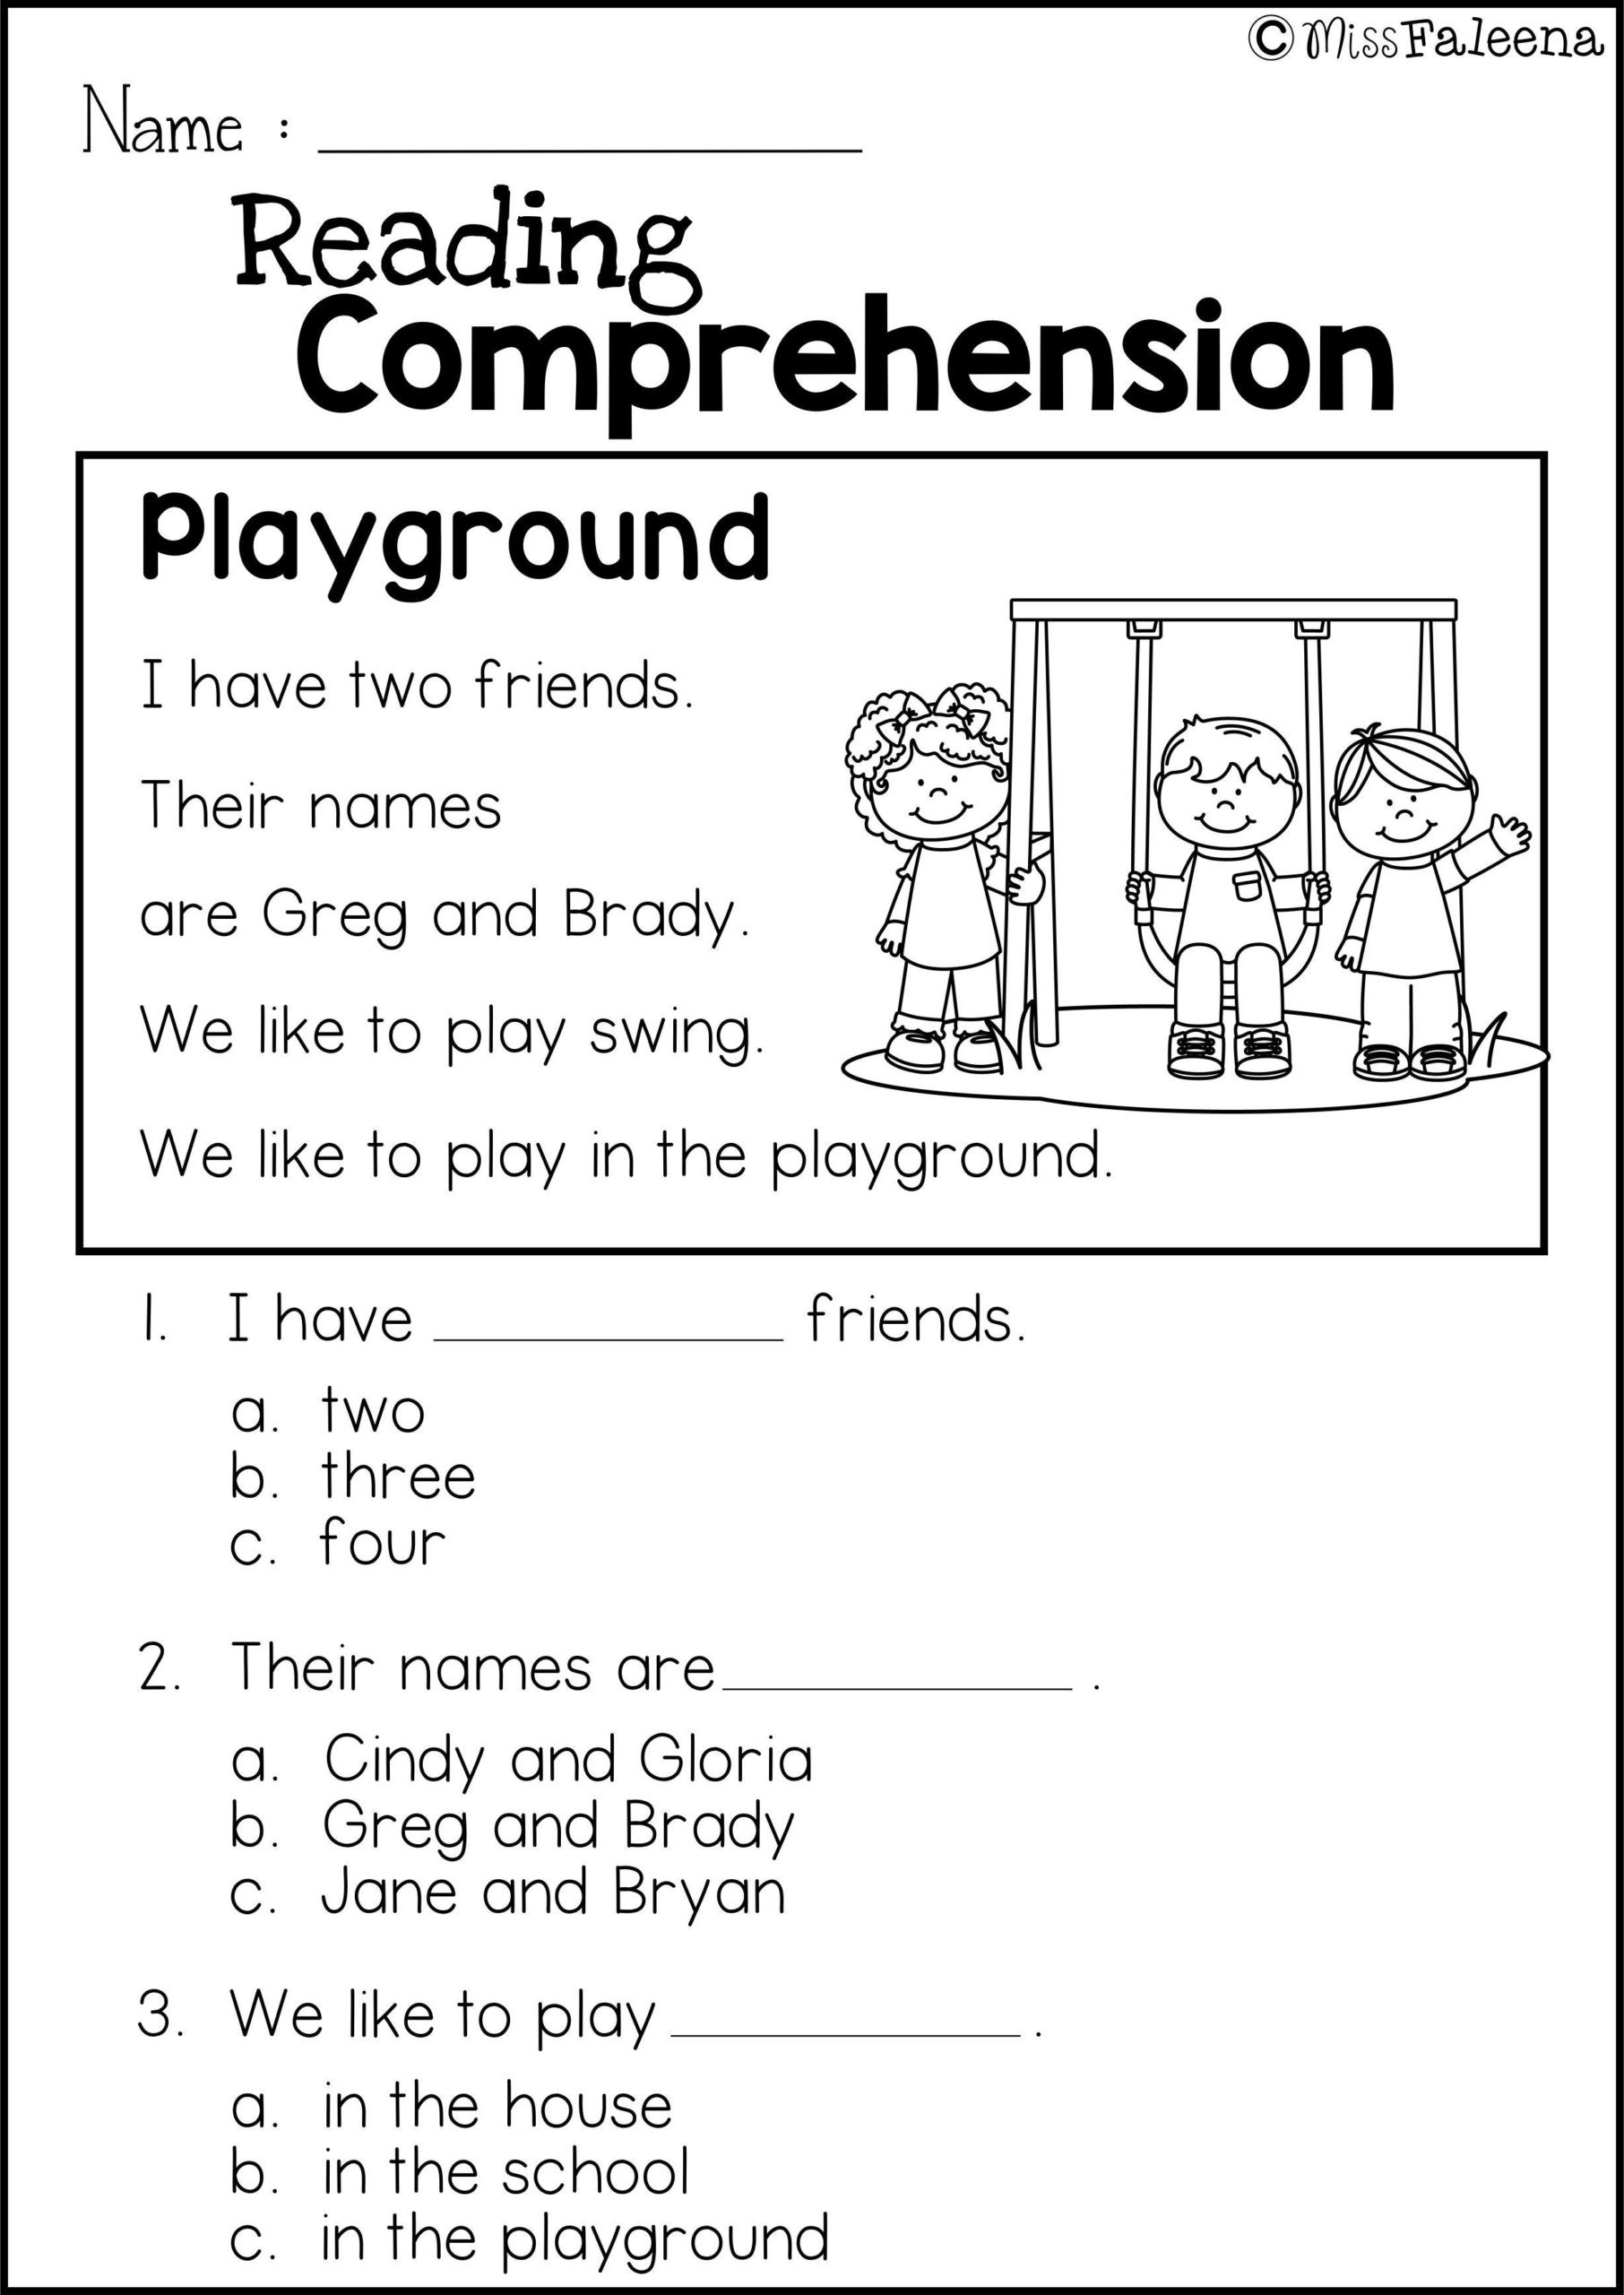 2nd Grade Reading Worksheets Printable Math Worksheet Printable Reading Prehension for Second